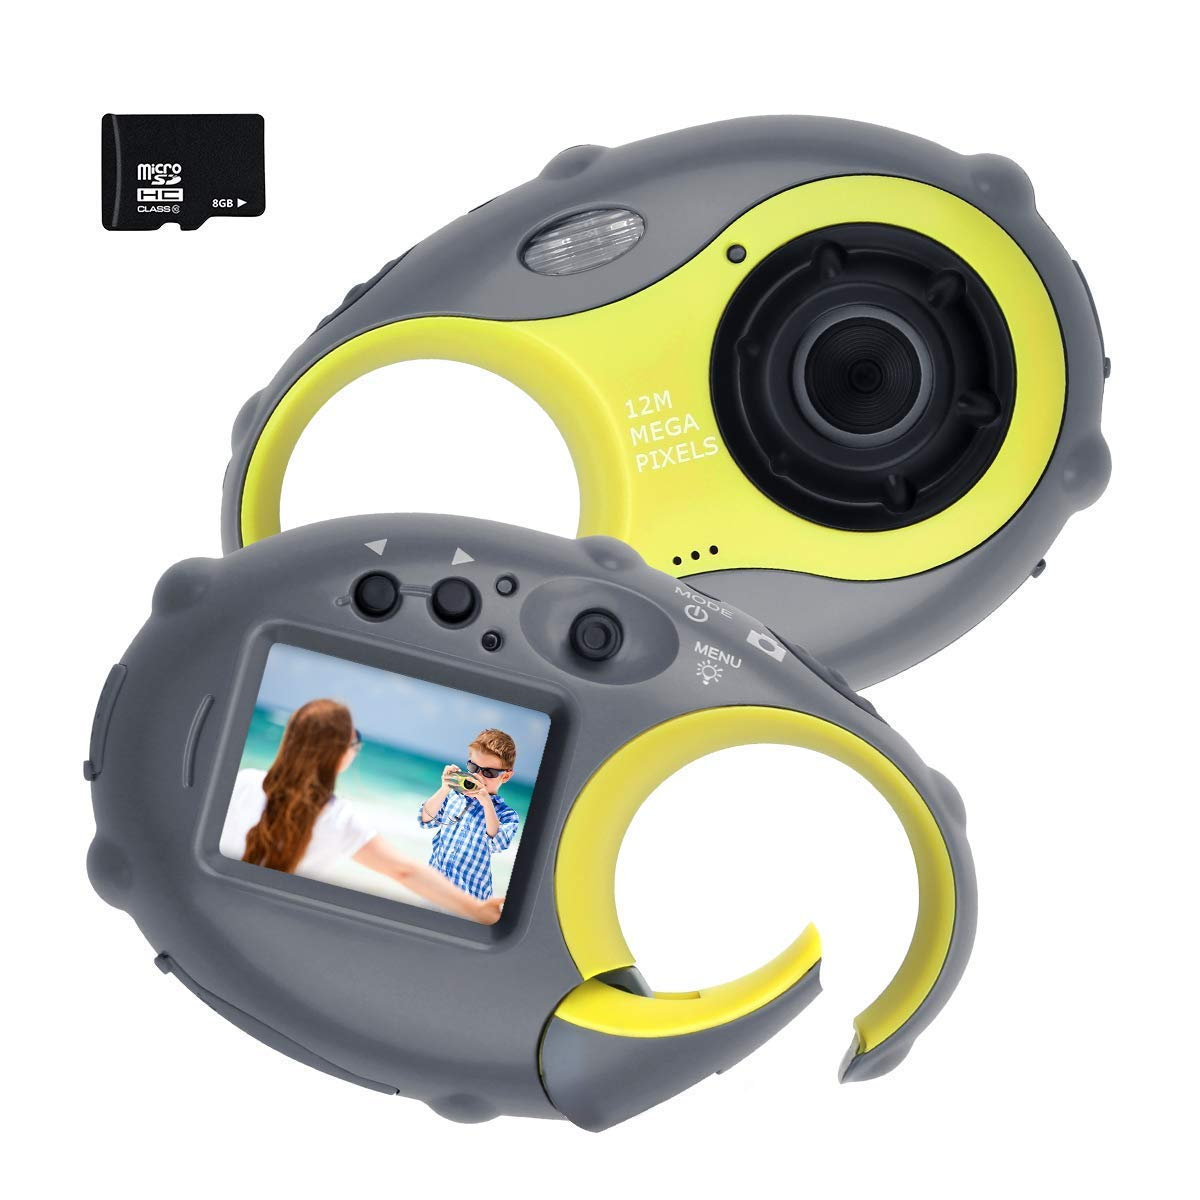 Kids Camera, Digital Camera for Children, 12MP HD Kids Video Camera with 1.5 Inch LCD Screen, 4x Digital Zoom, Flash Light, Rechargeable Battery and 8GB SD Card, Best Holiday Gift for Boys and Girls